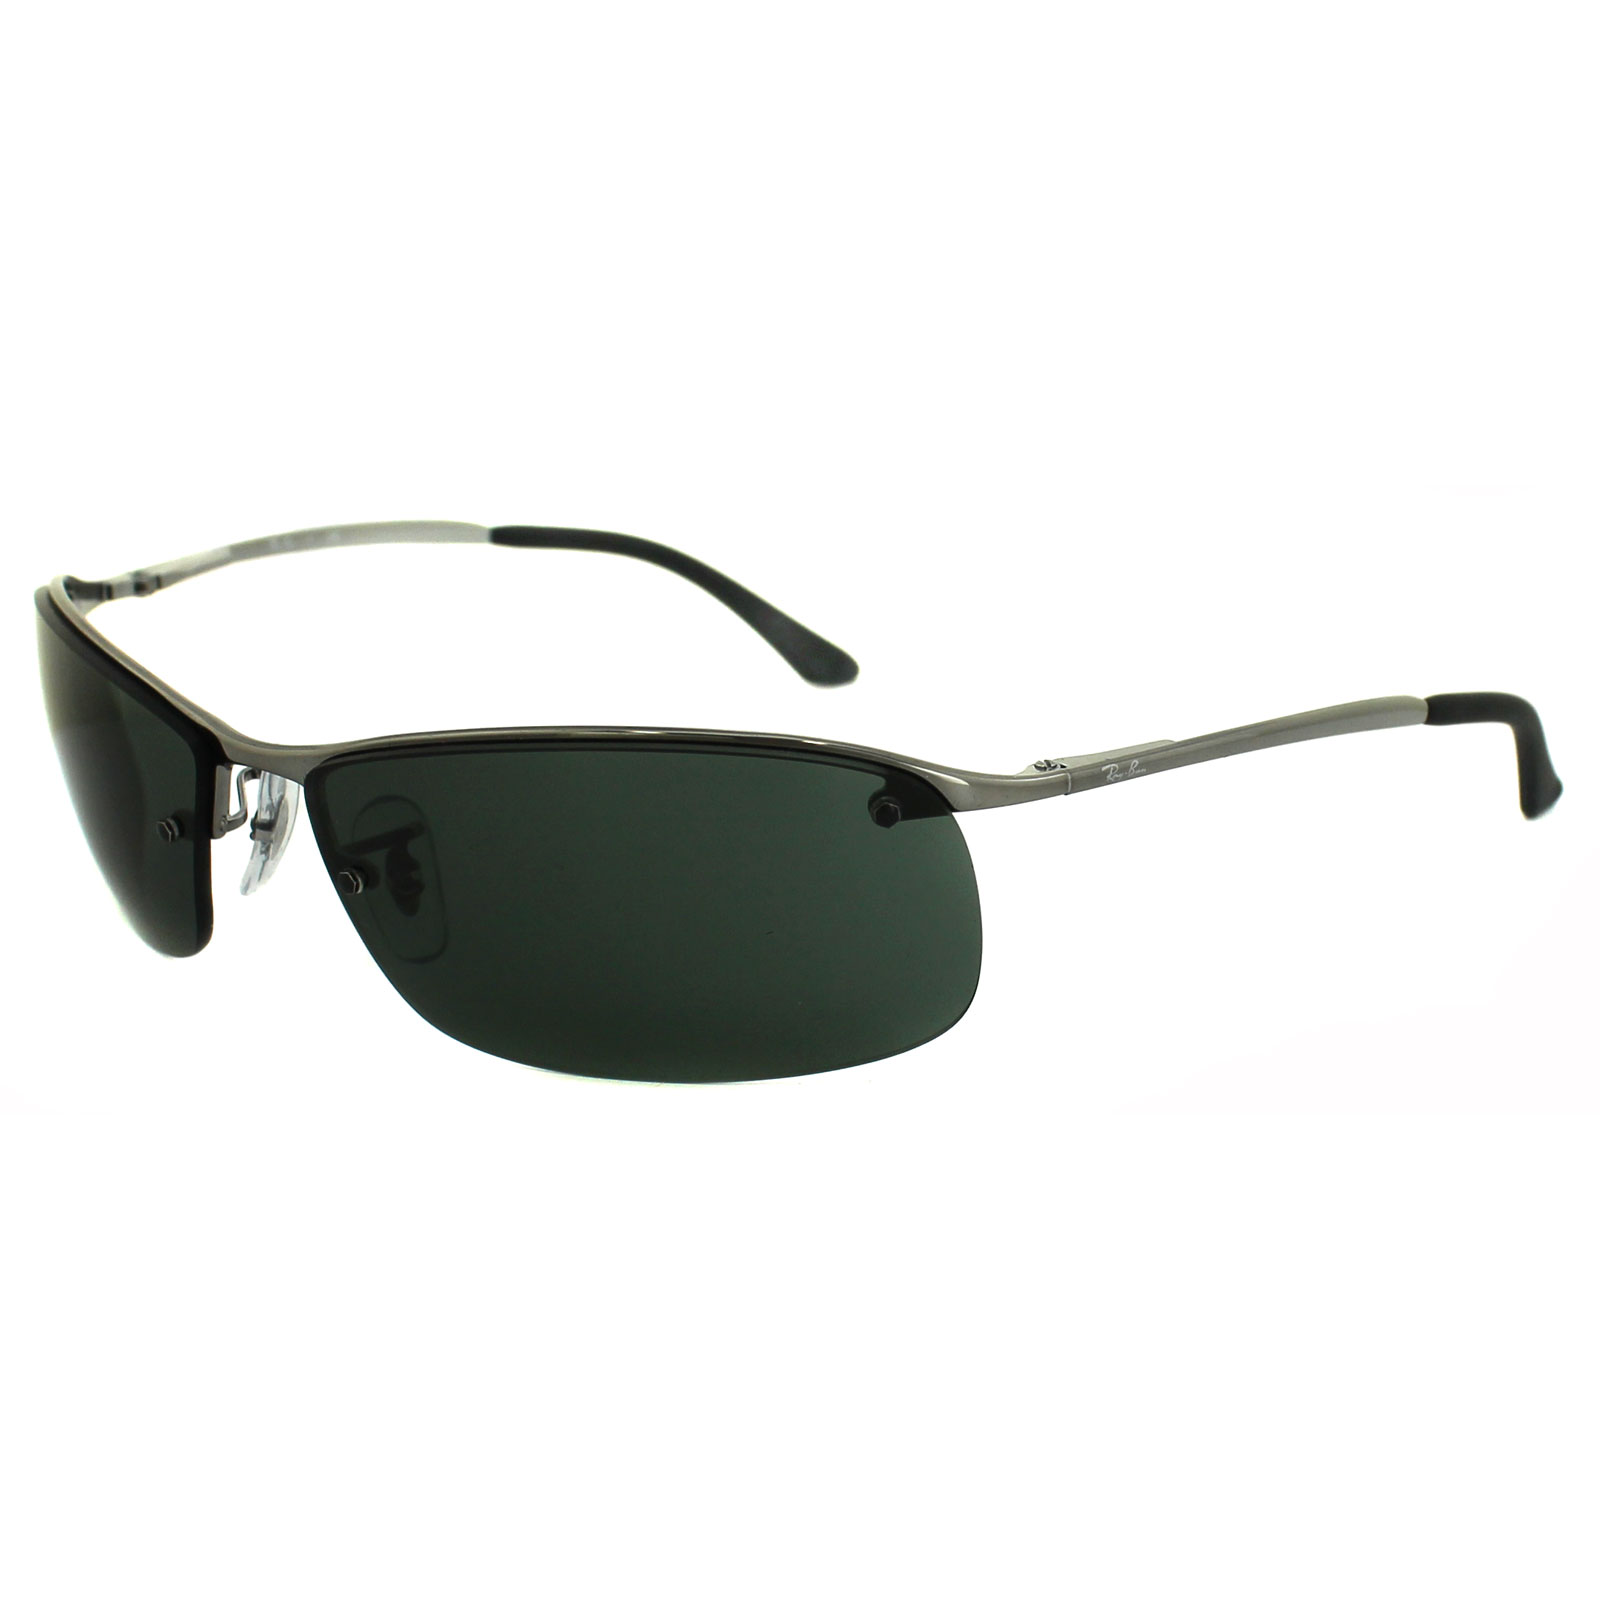 Cheap Ray Ban Top Bar 3183 Sunglasses Discounted Sunglasses